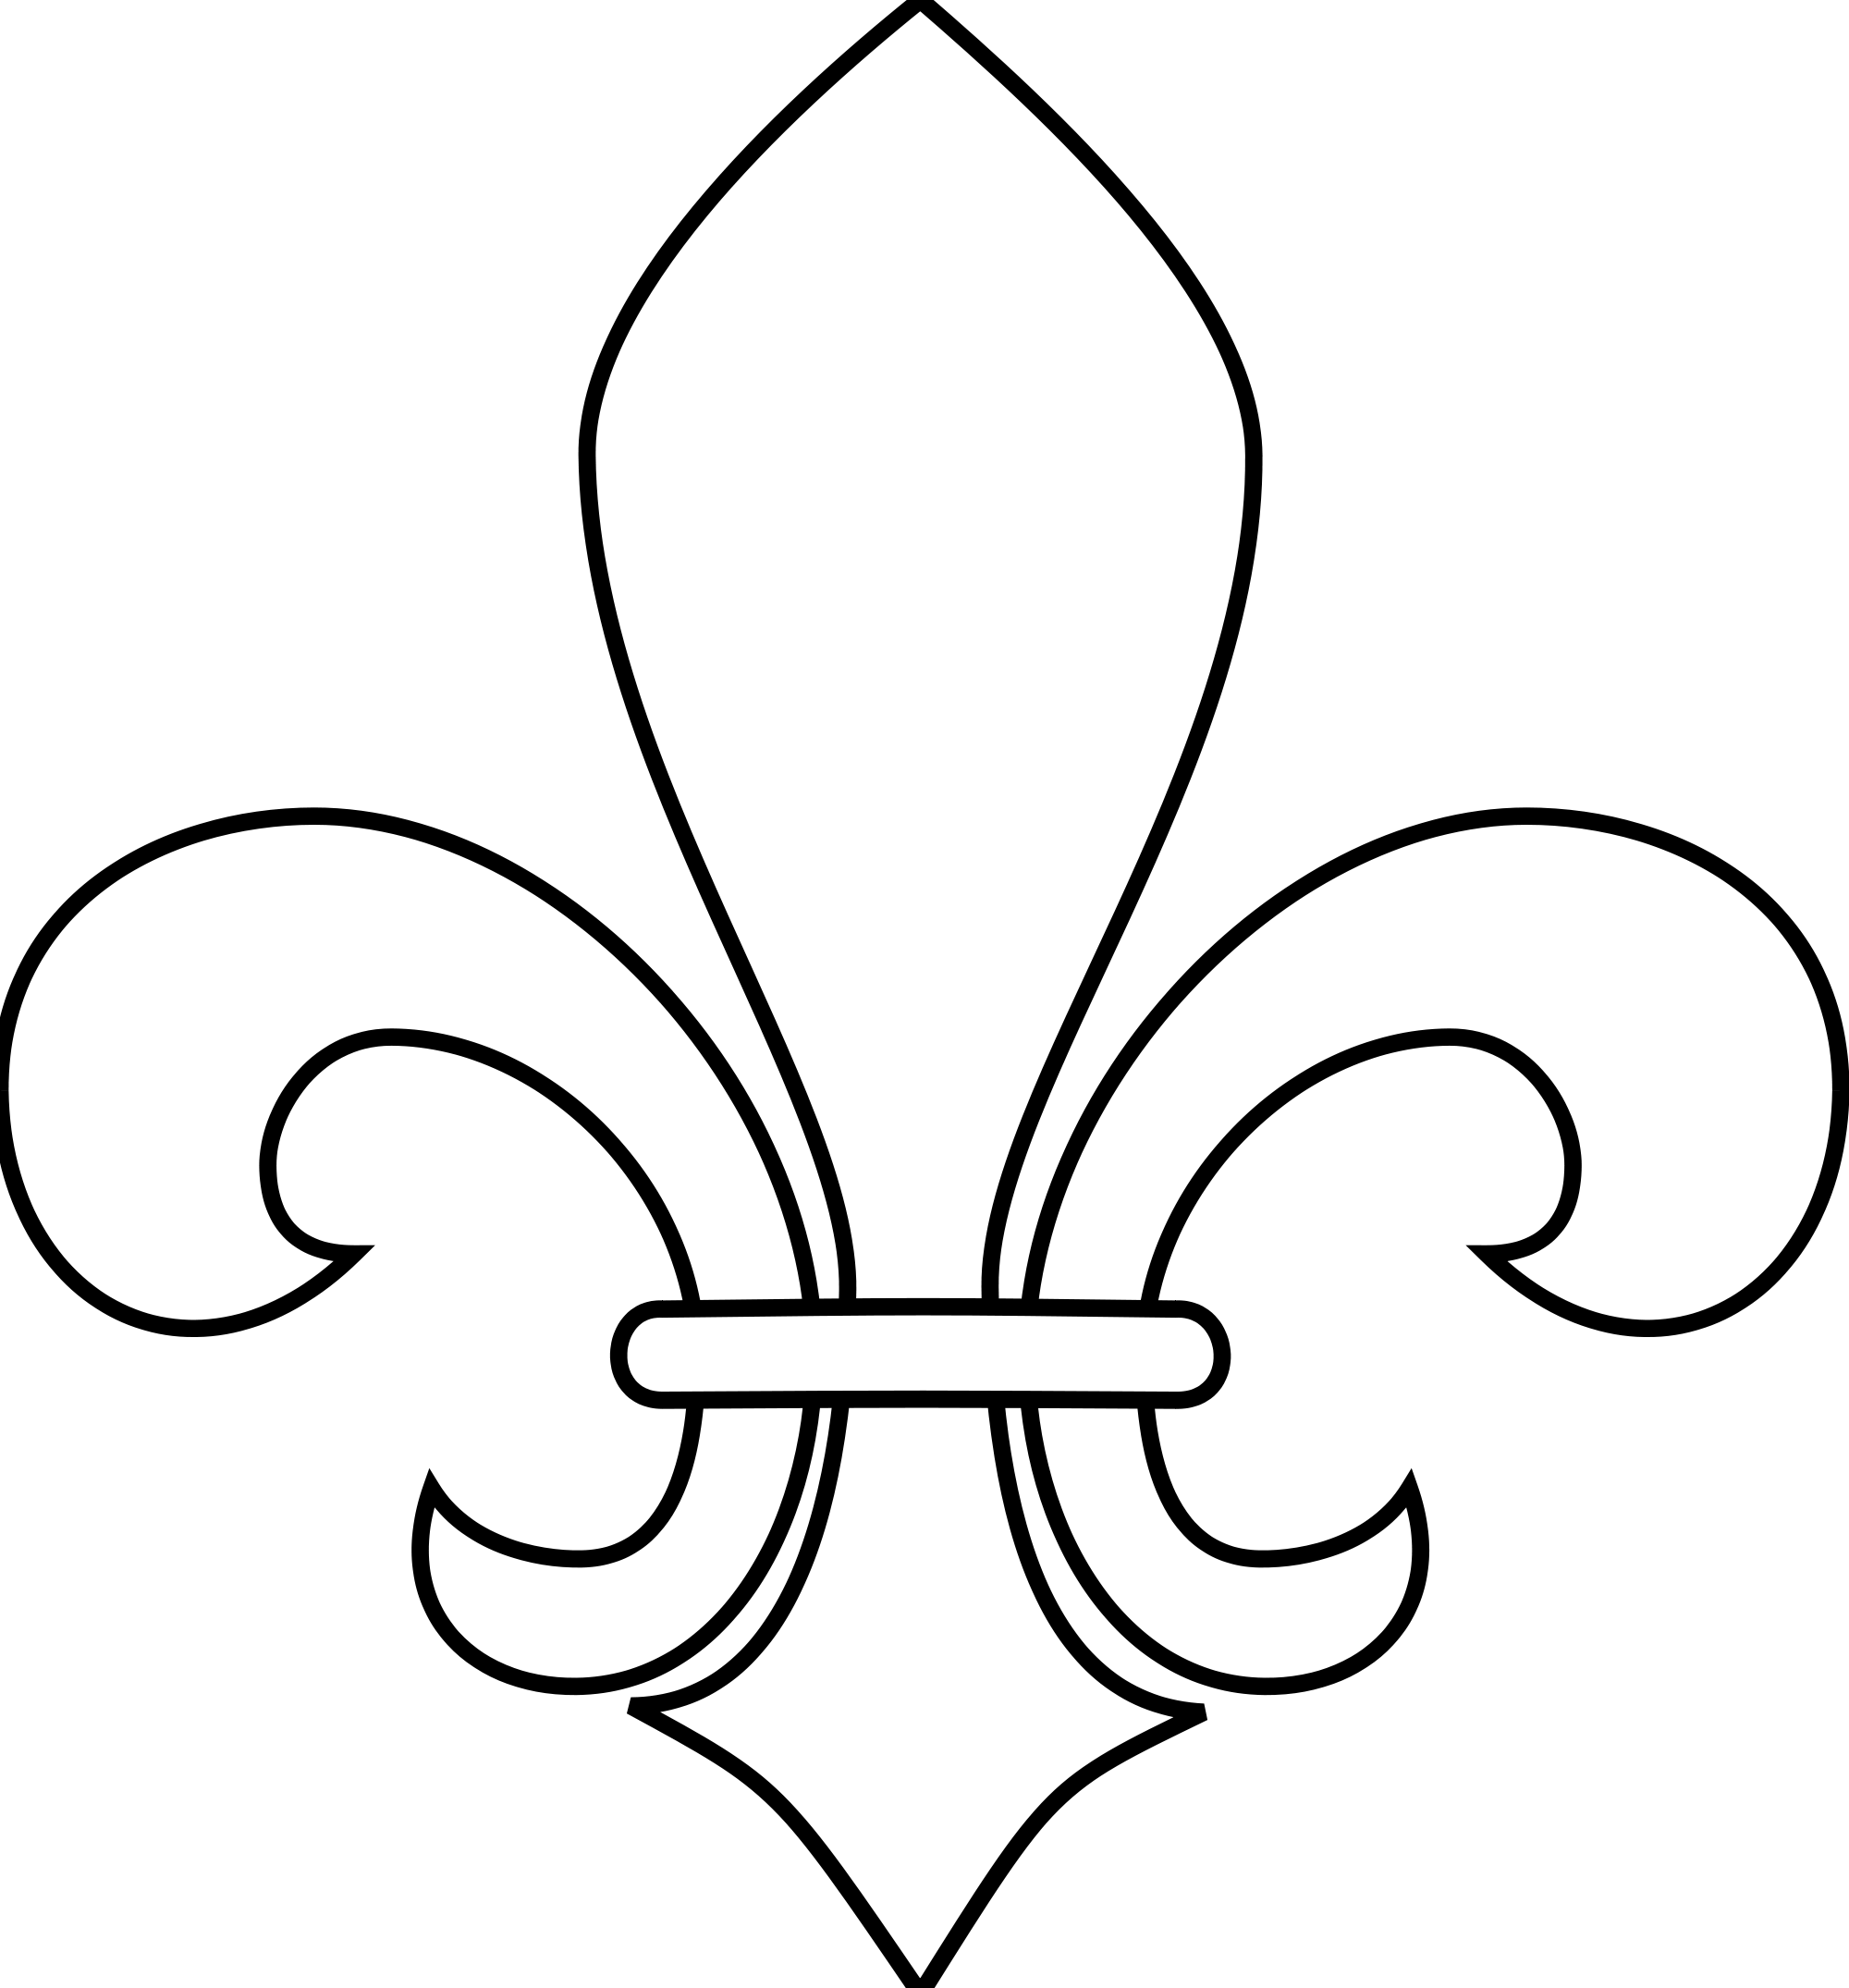 Fleur-de-lis svg #10, Download drawings